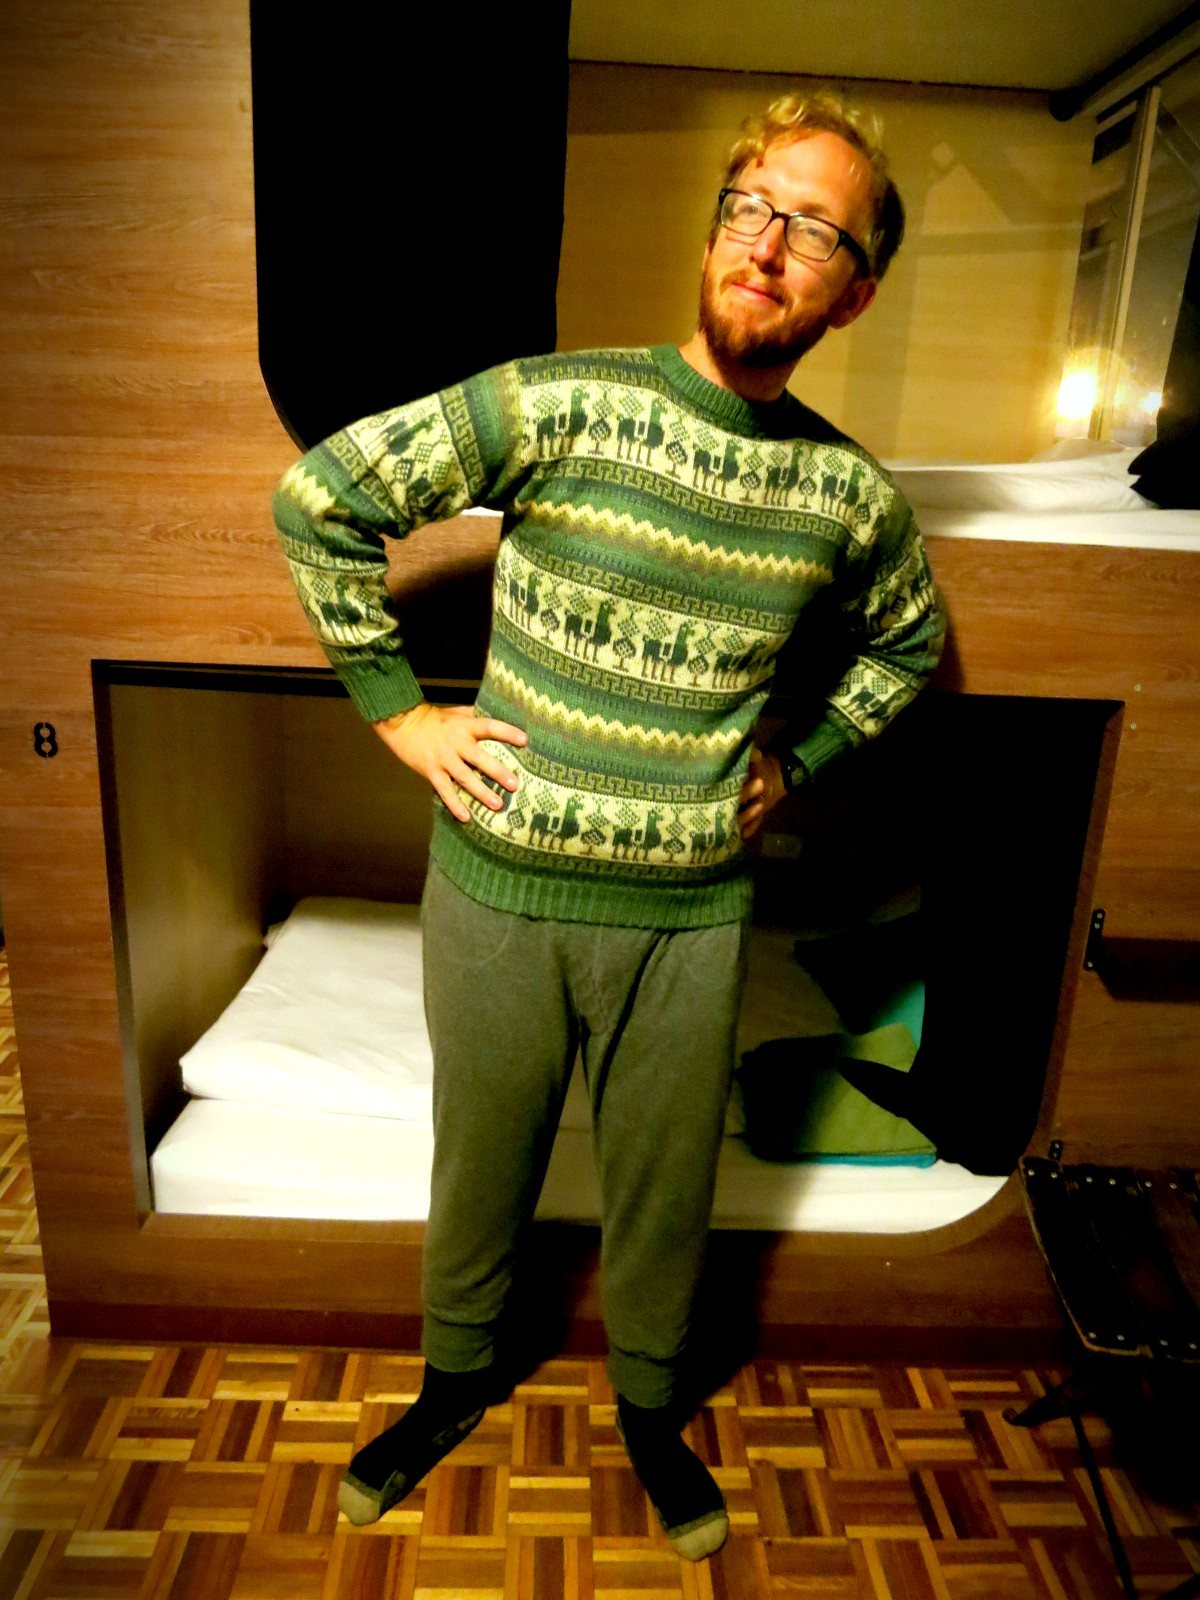 Approximately .05 seconds after we return to our hostel, this is what we look like: cozy alpaca sweater. Sweatpants. Socks. Comfy AF.